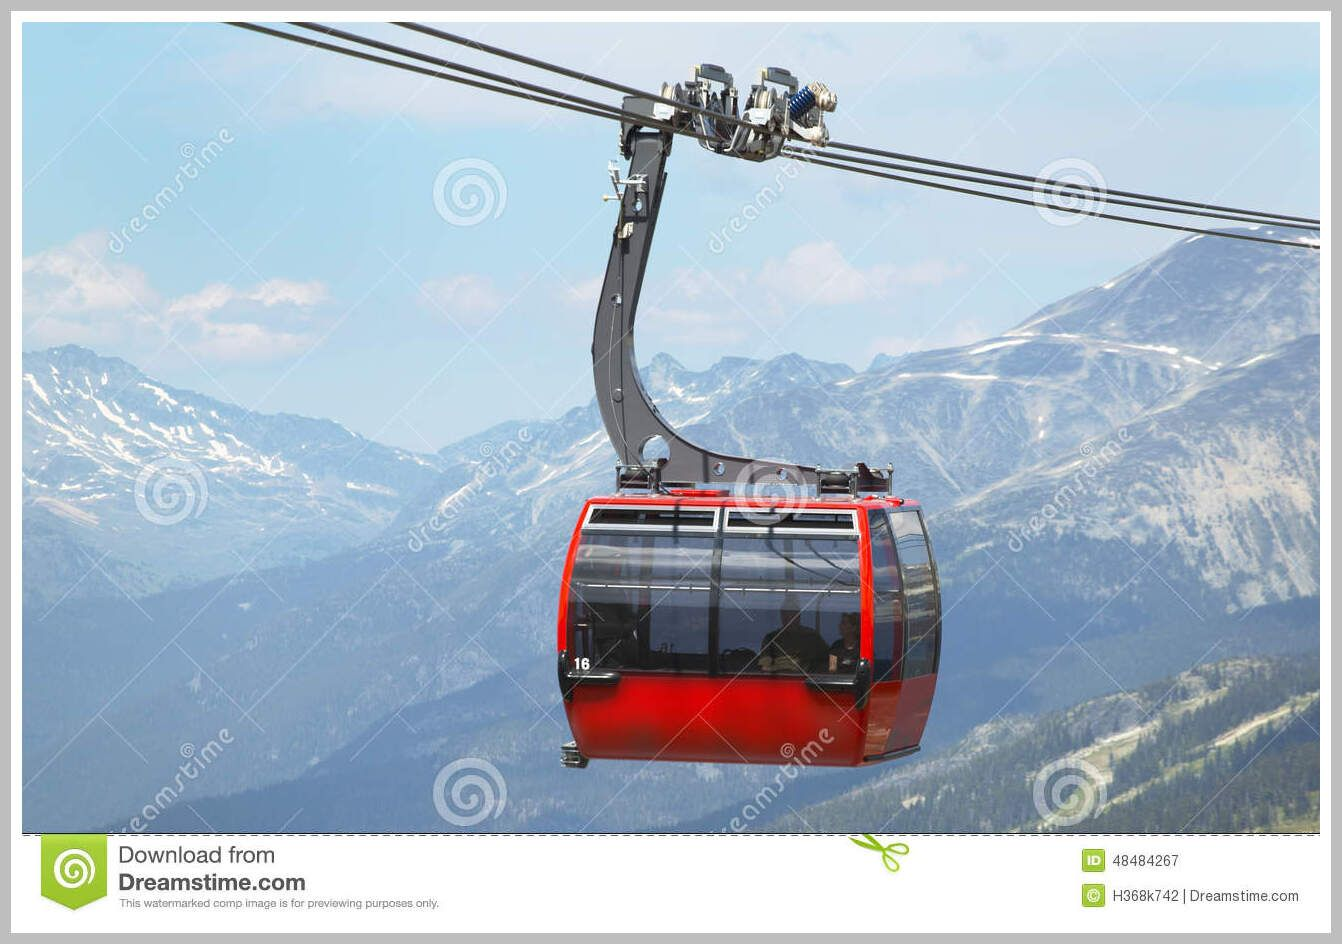 107 Reference Of Chair Lift Snowy Mountains In 2020 Chair Lift Chair Beech Mountain